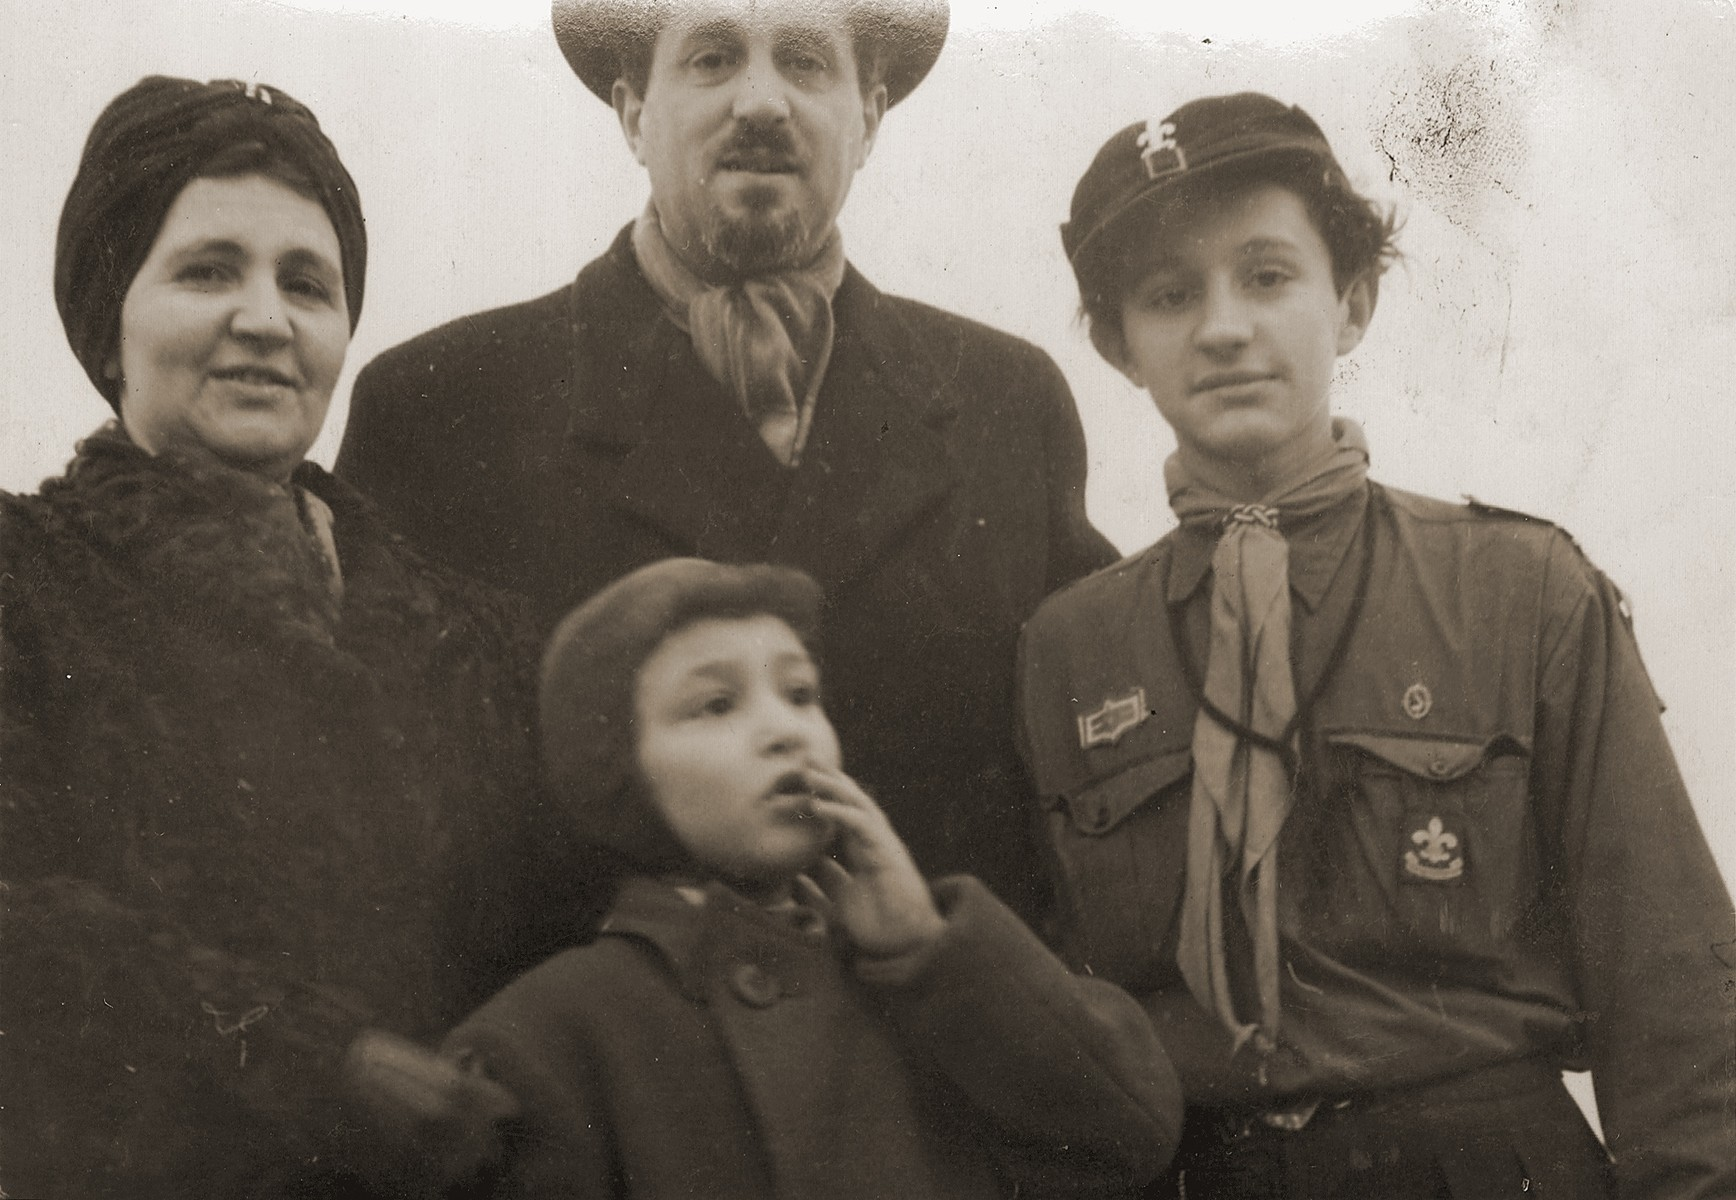 Eugene and Helen Goldberger with their sons Leo and Gus.  Leo is wearing a Danish boy scout uniform.